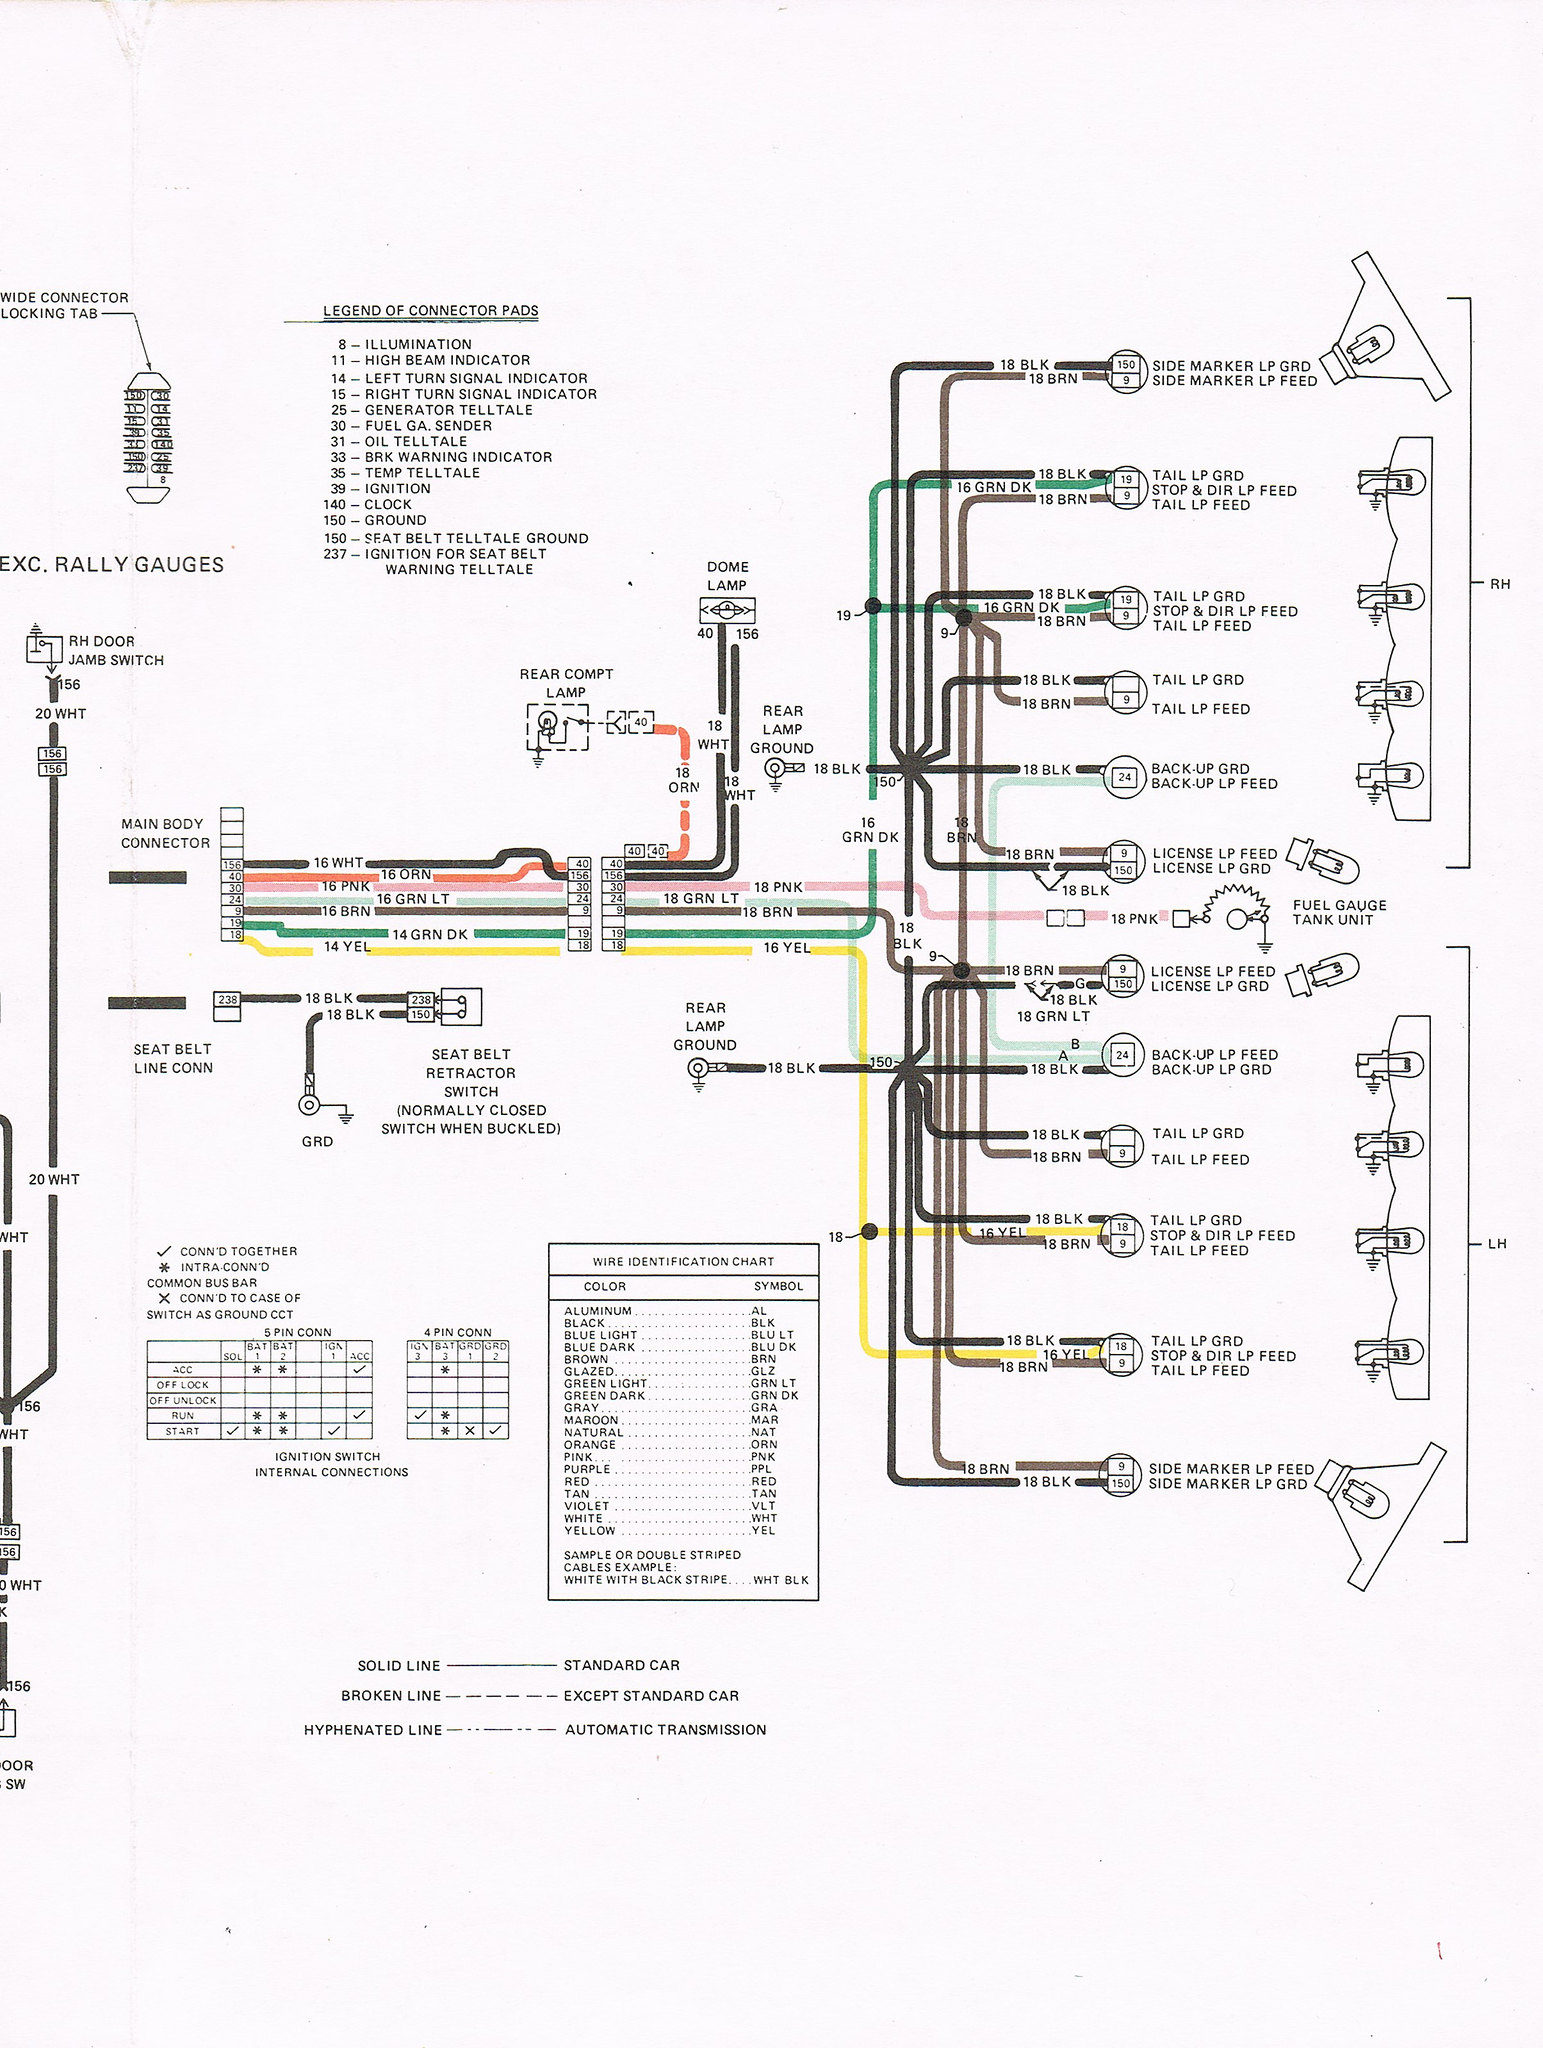 80 Camaro Wiring Diagram : 24 Wiring Diagram Images